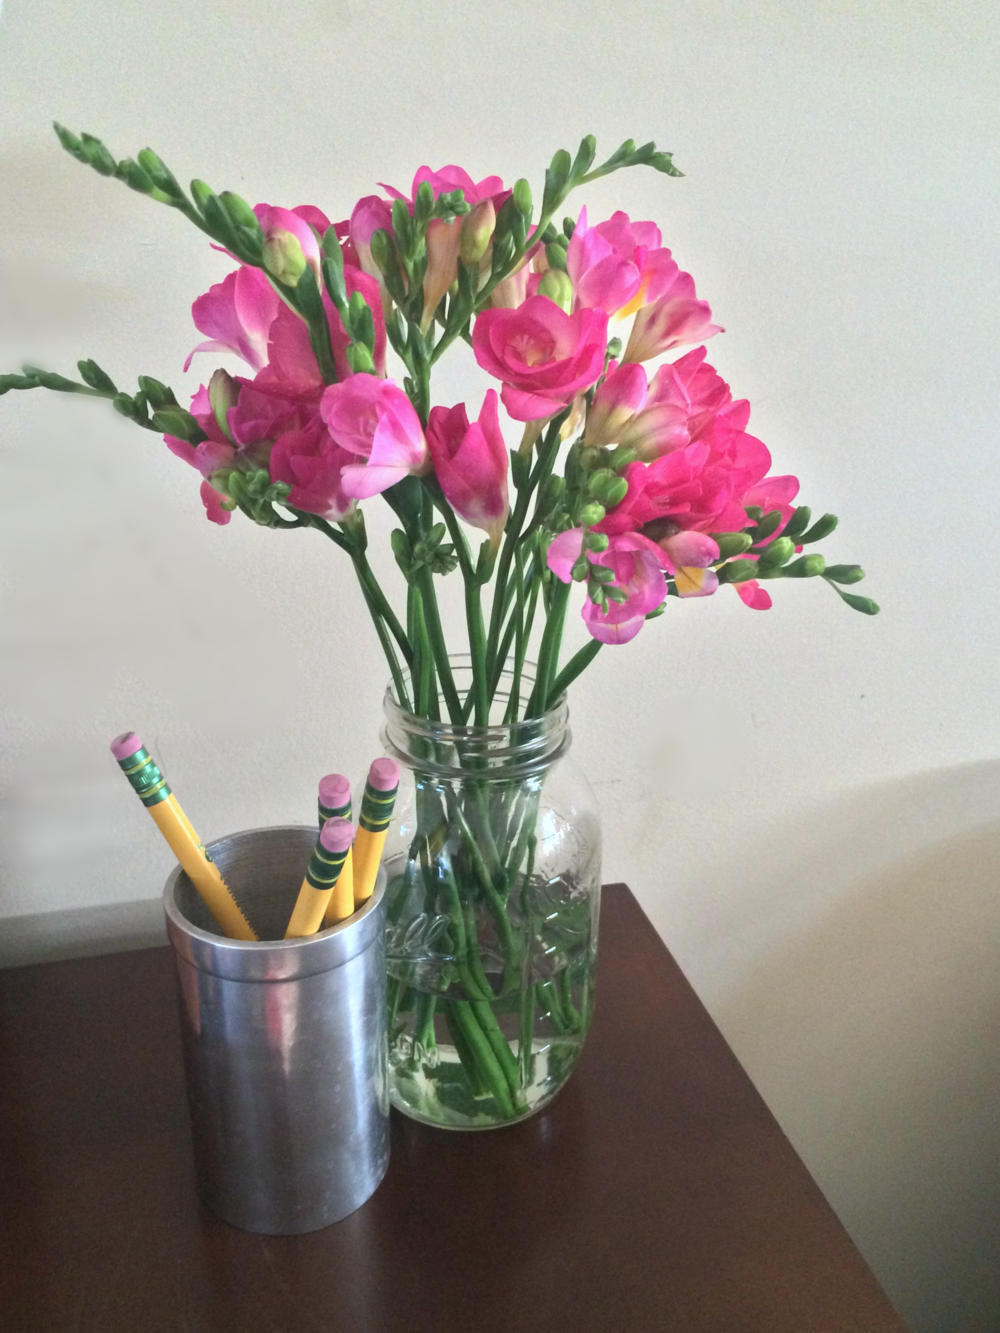 "Love peonies! But sometimes they feel so fancy.  Smaller flowers are just as pretty.  Oh and let's not forget about No.2 pencils.  Come on - pencils symbolize DREAMS!  These particular ones are ""My First Pencils"" from Ticonderoga.  Totally not sensible - they're bigger for kid hands. I think they're funny.  Fact: one day I'll personalize my own pencils and give them to people as a calling card.  It'll be my thing."